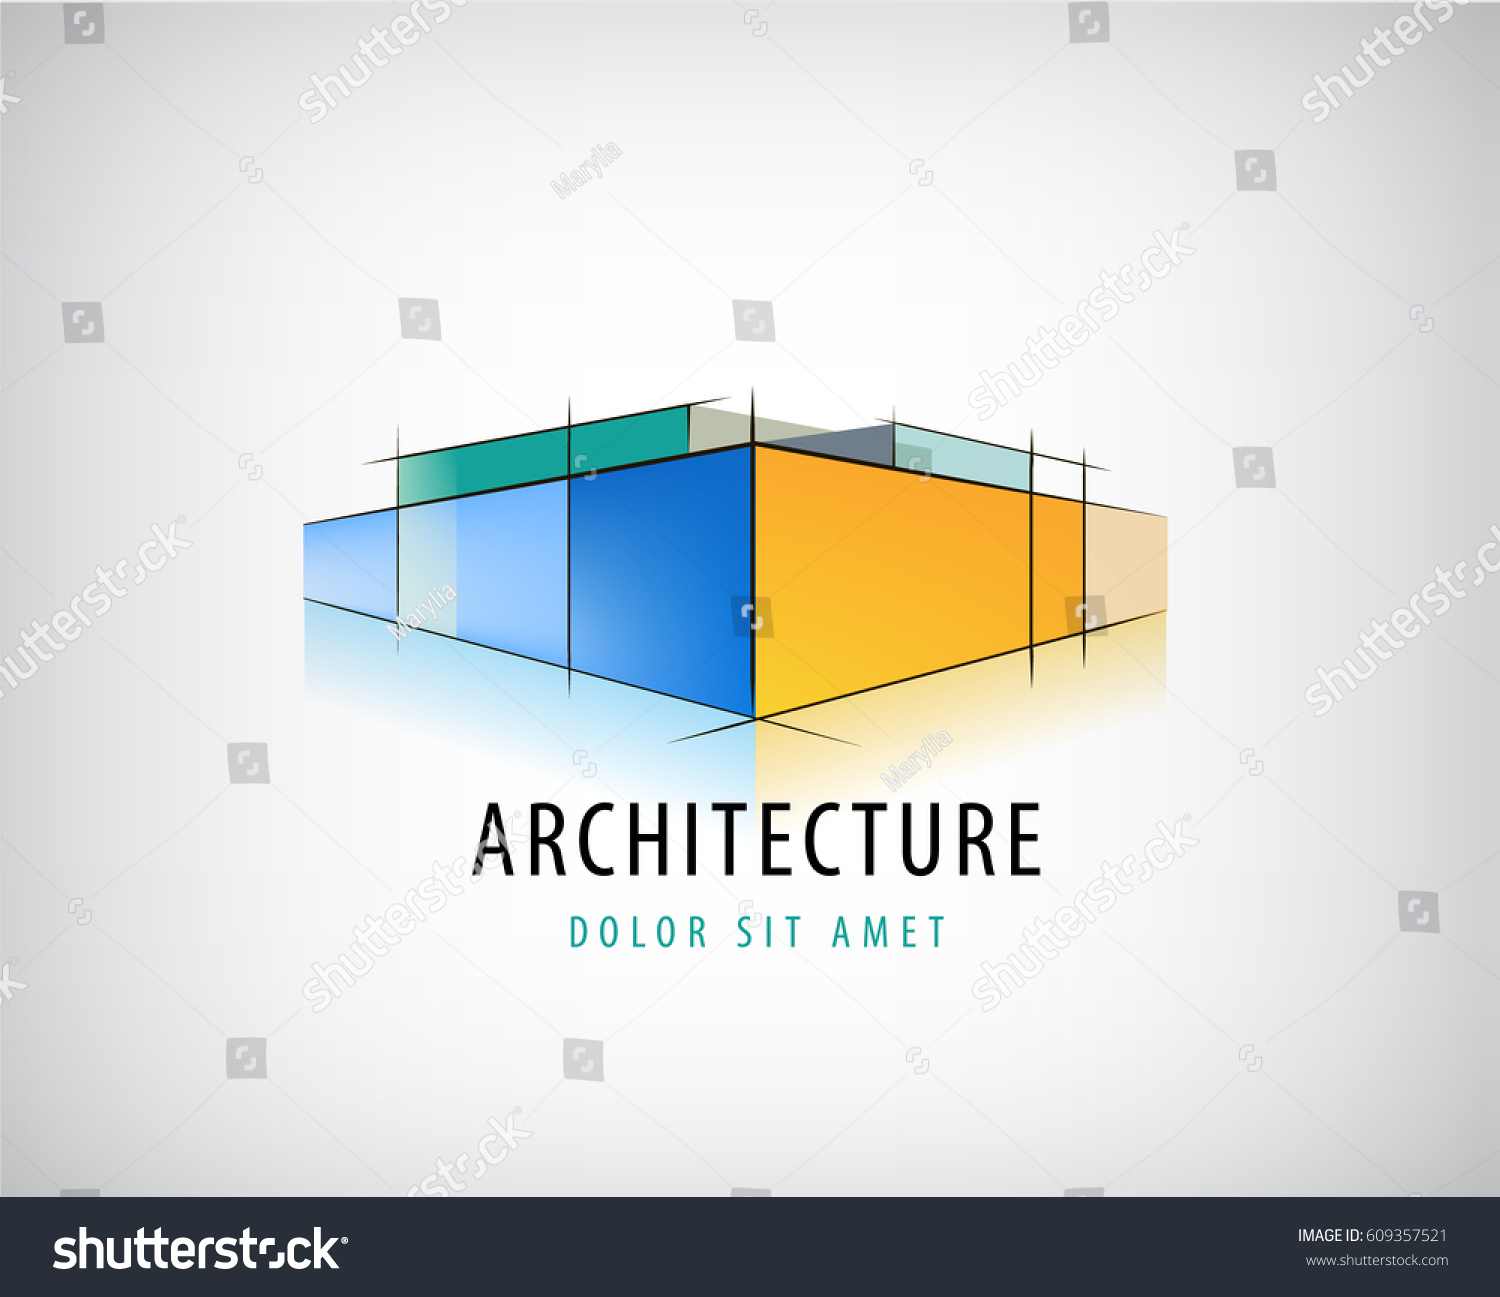 House design logo - Vector Abstract 3d Architecture Sign Building Plan Logo House Design Structure Icon Isolated